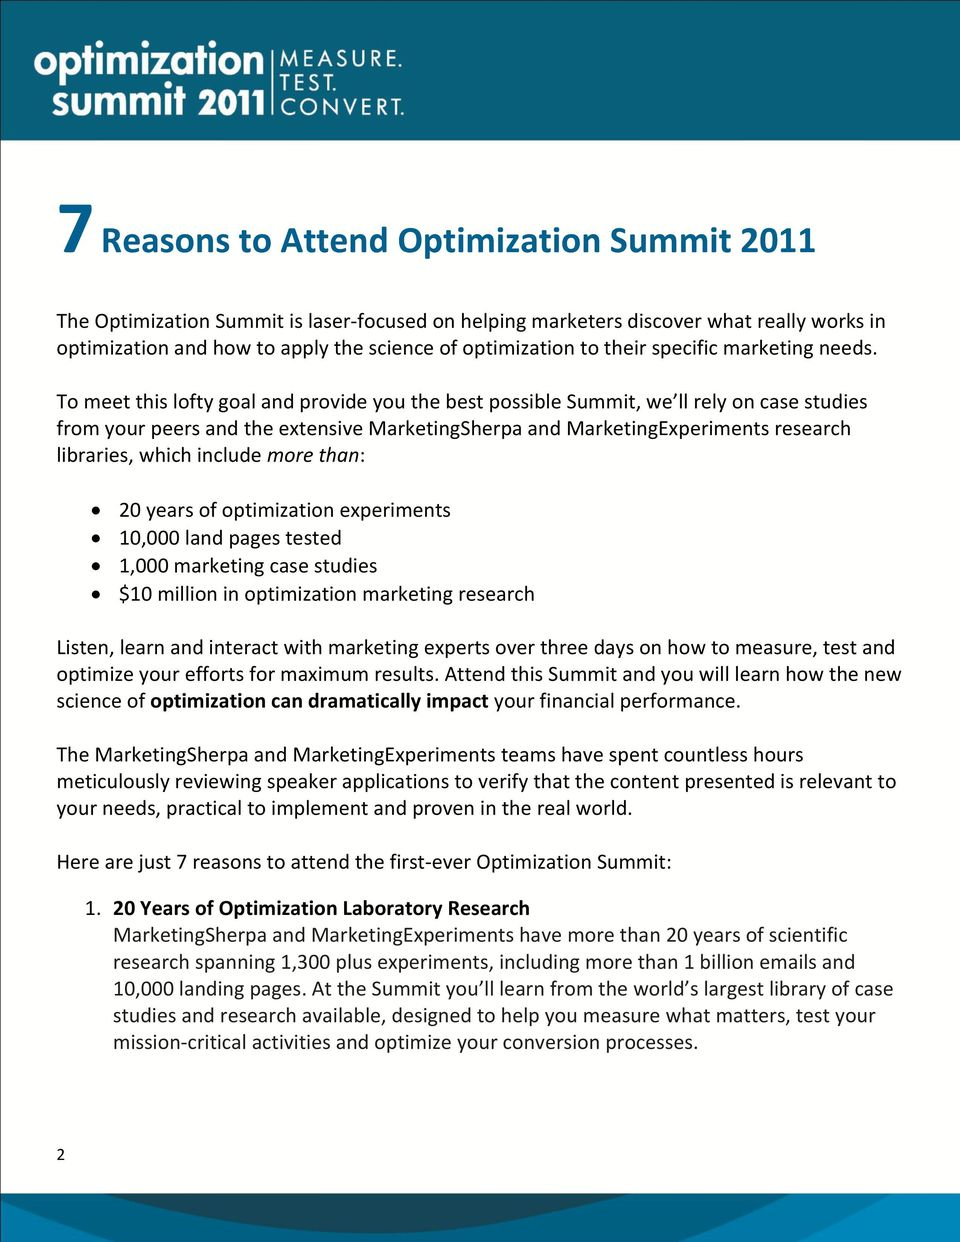 To meet this lofty goal and provide you the best possible Summit, we ll rely on case studies from your peers and the extensive MarketingSherpa and MarketingExperiments research libraries, which